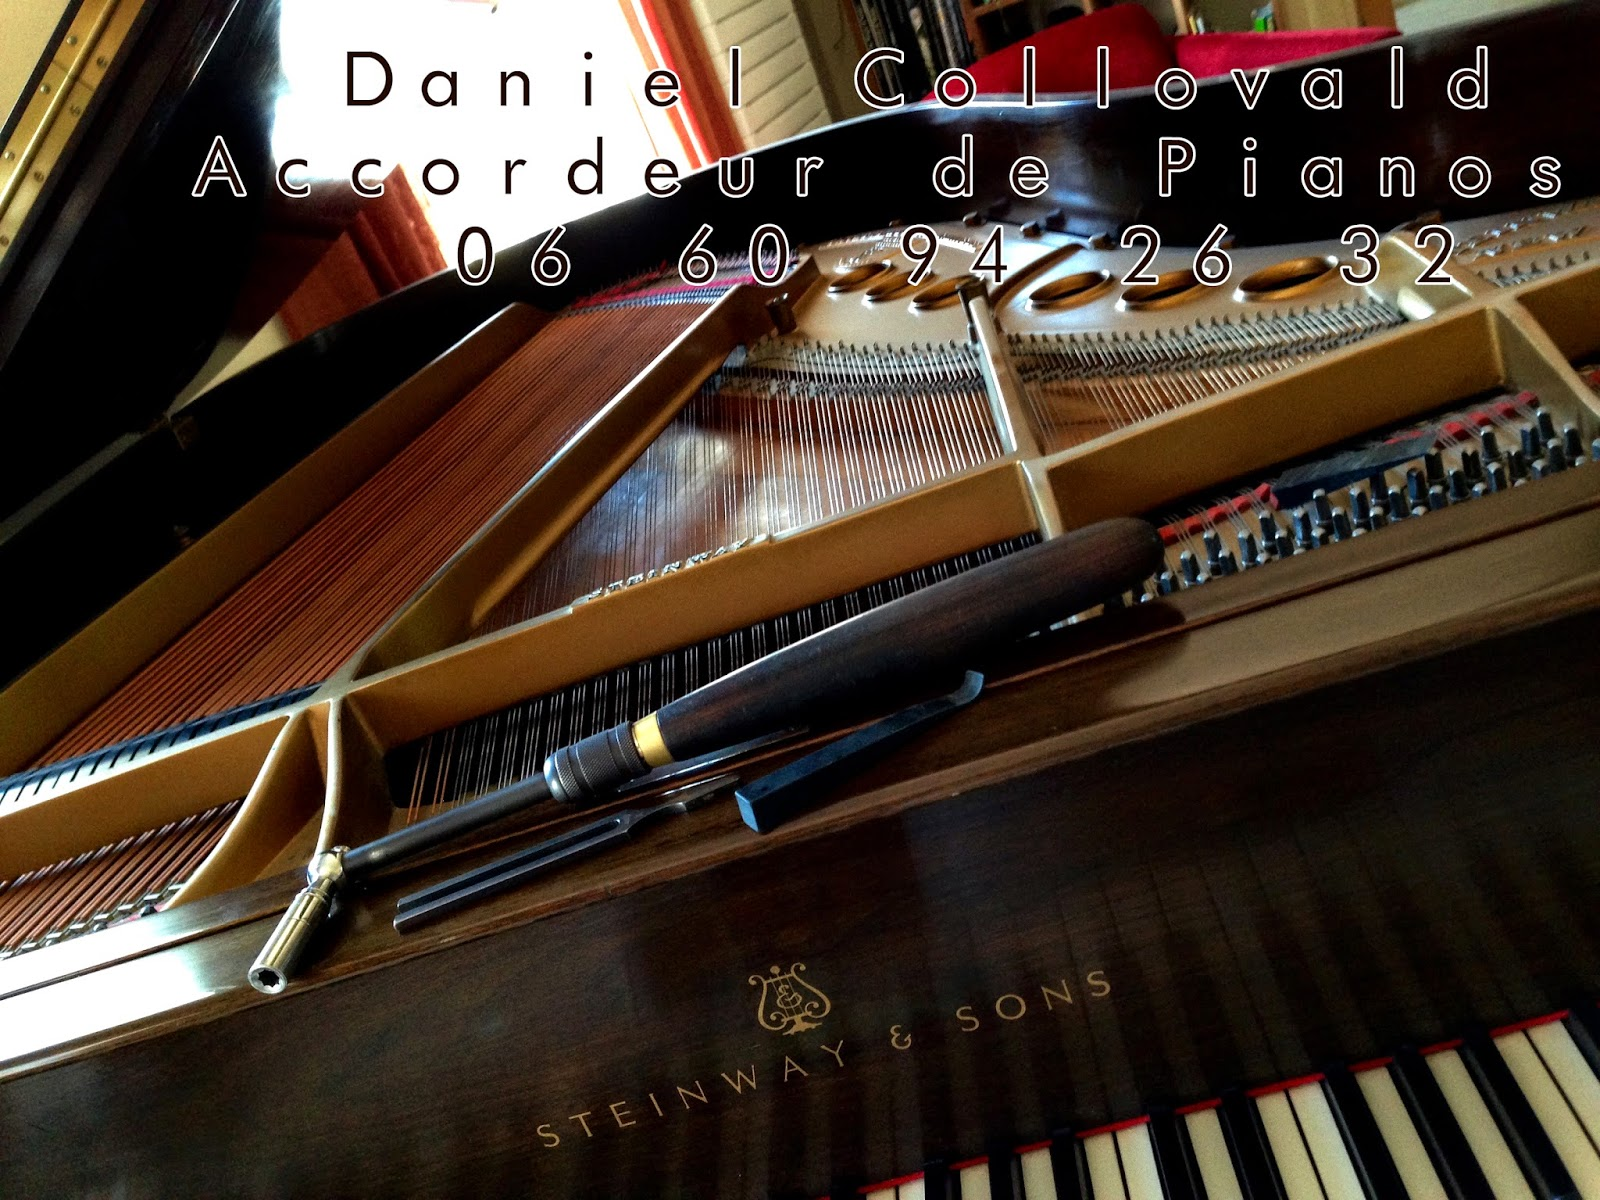 Accordeur de pianos Daniel Collovald